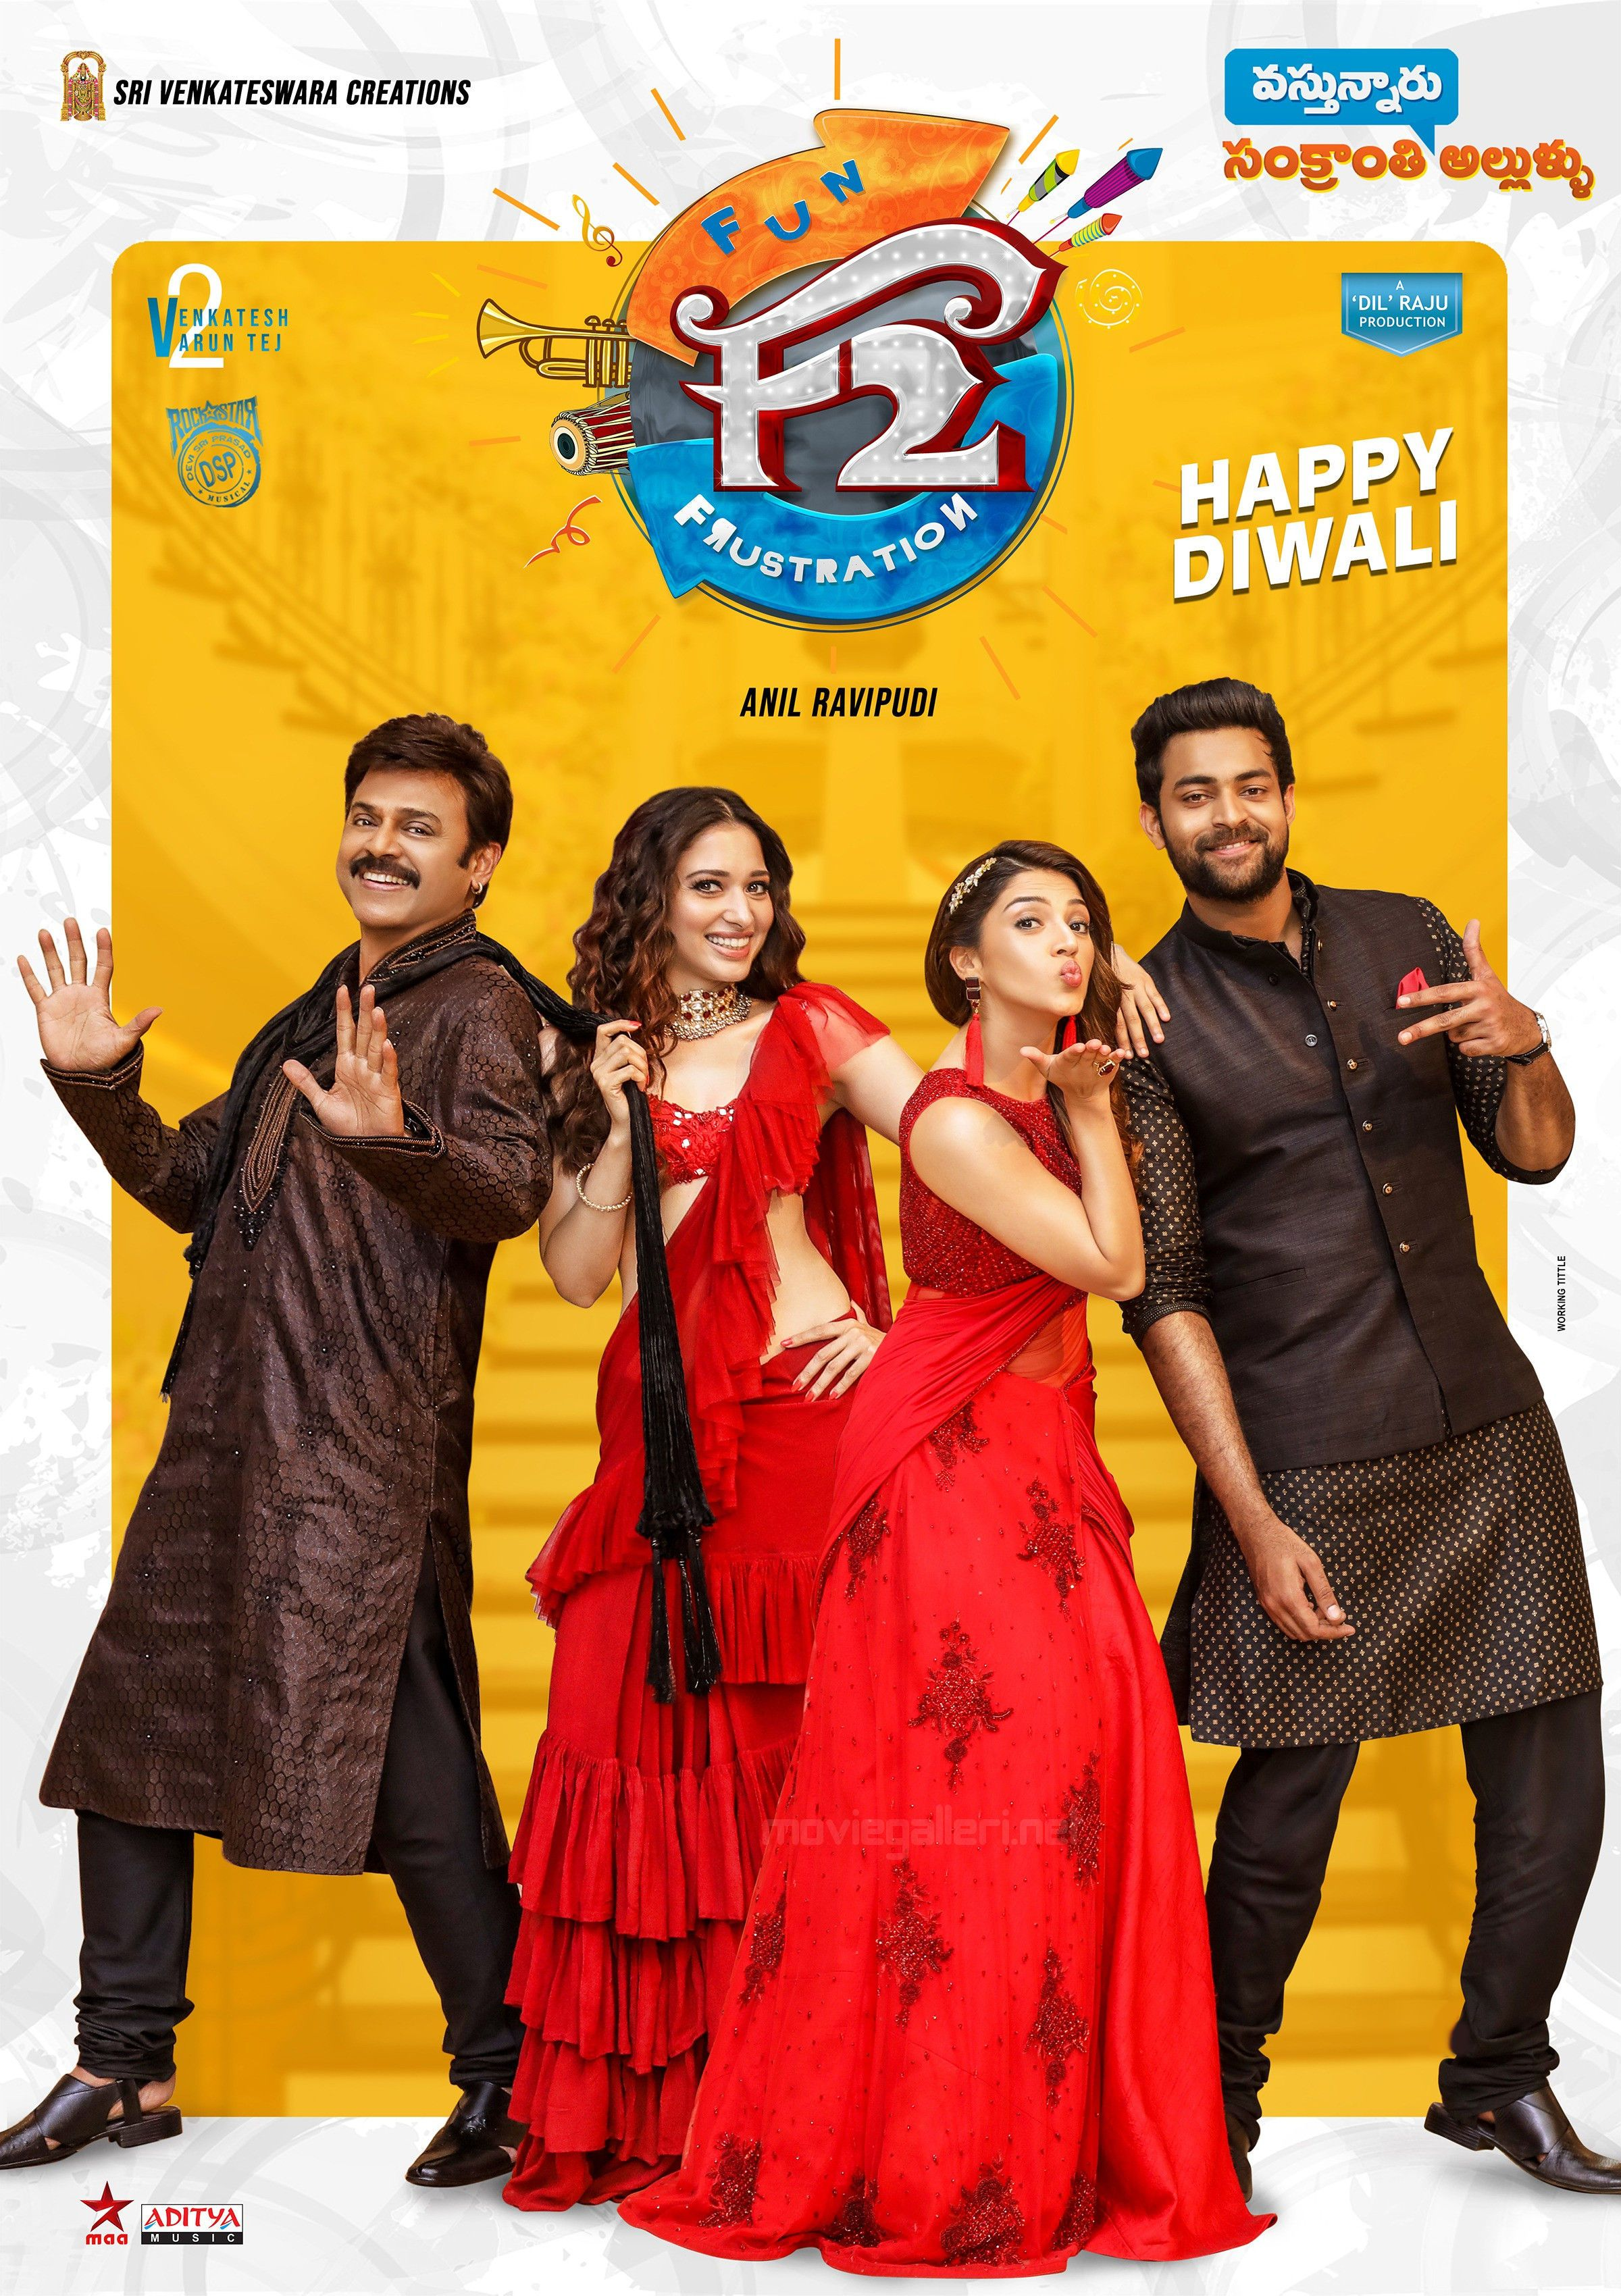 F2 Fun Frustration - Telugu movie HD Poster | Flyboxcafe com